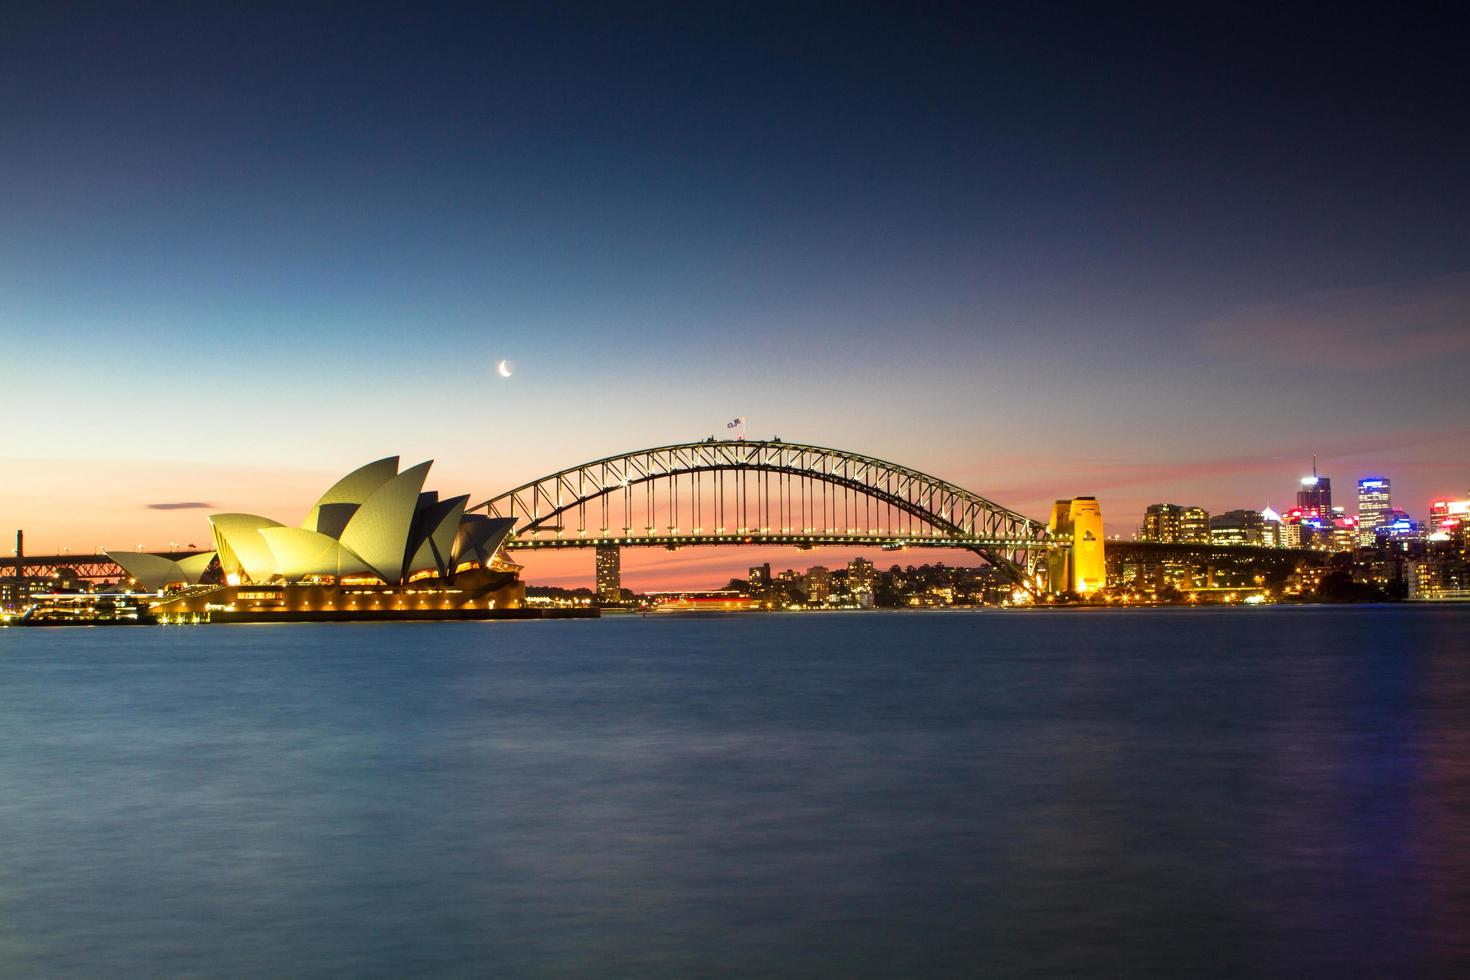 Sydney, Australia, 2020 - Sydney Opera House at sunset photo